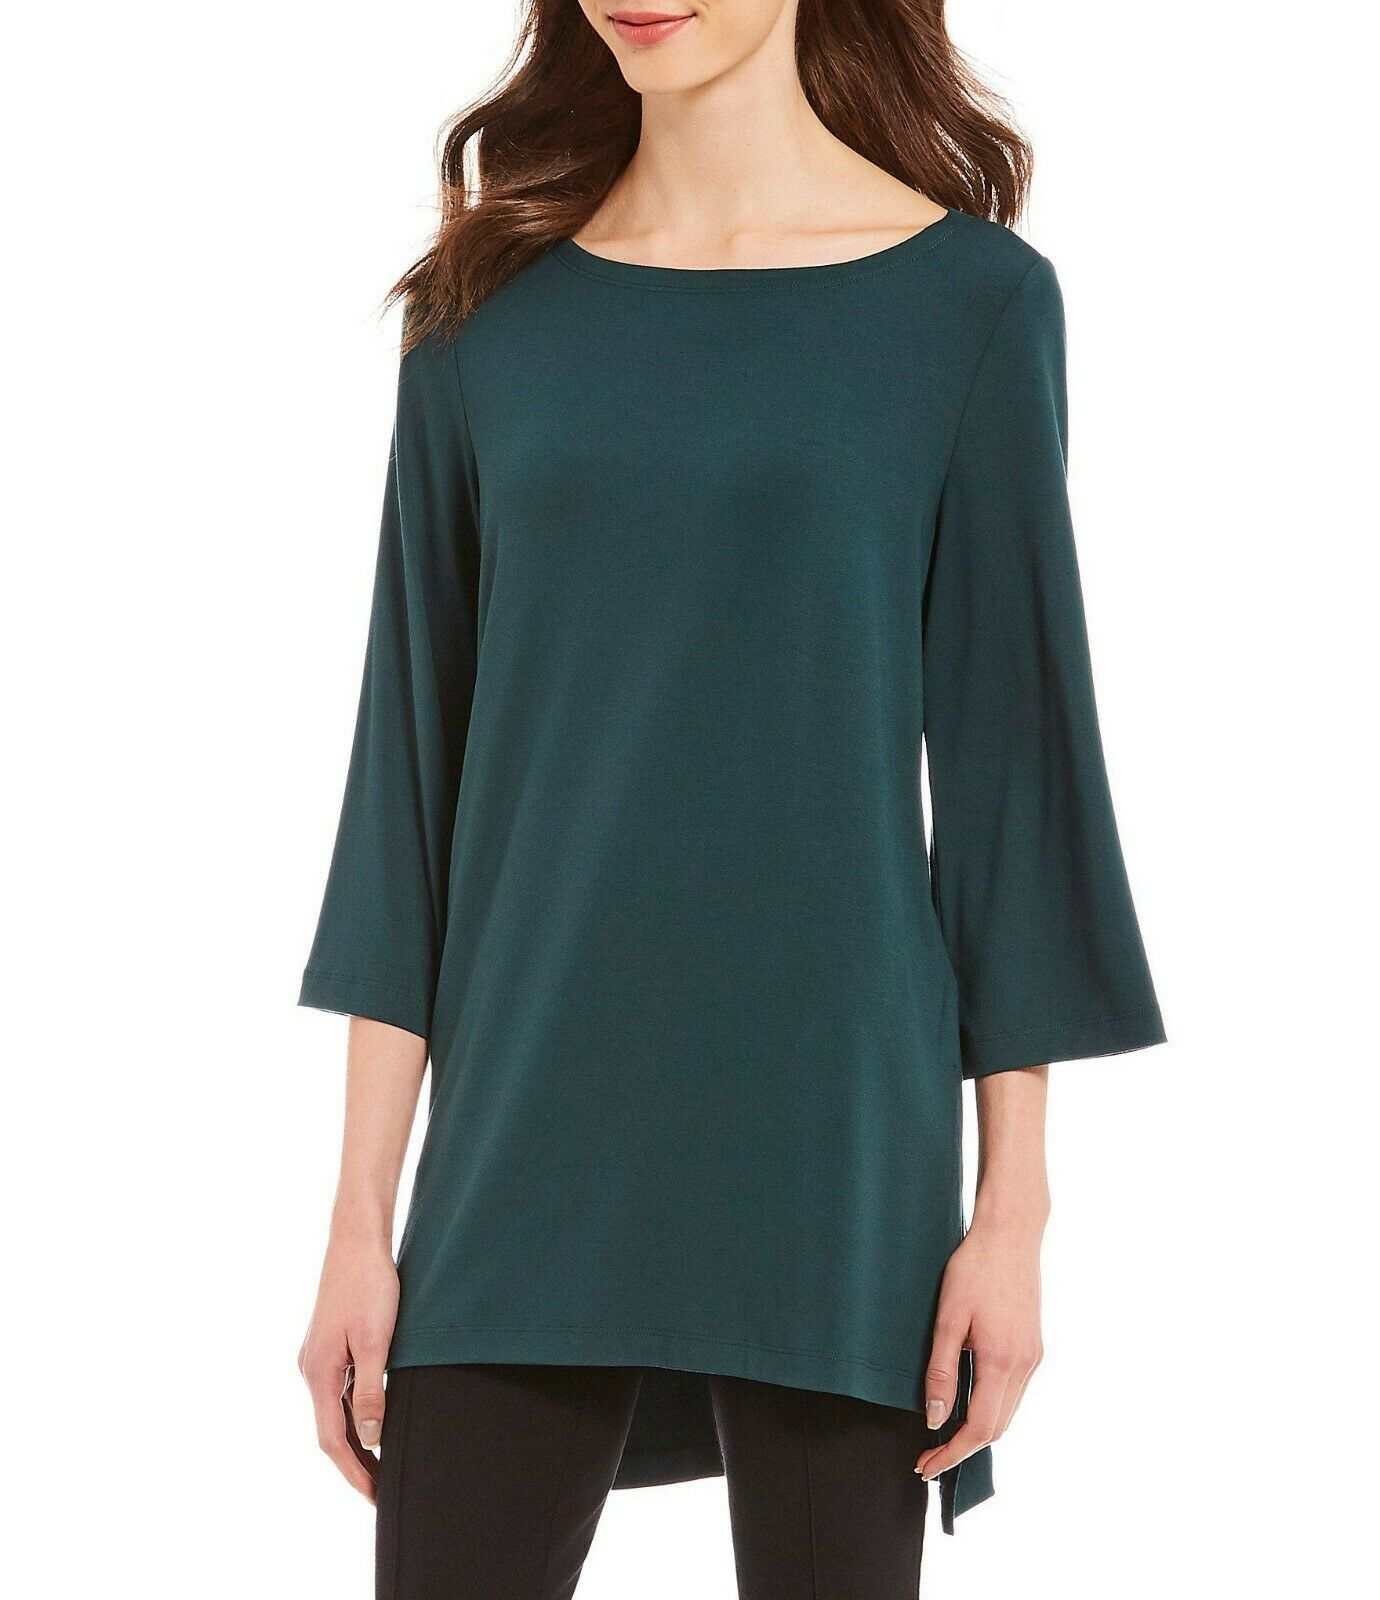 NWT Eileen Fisher Pine Viscose Jersey Bateau Top Tunic Size L MSRP   138